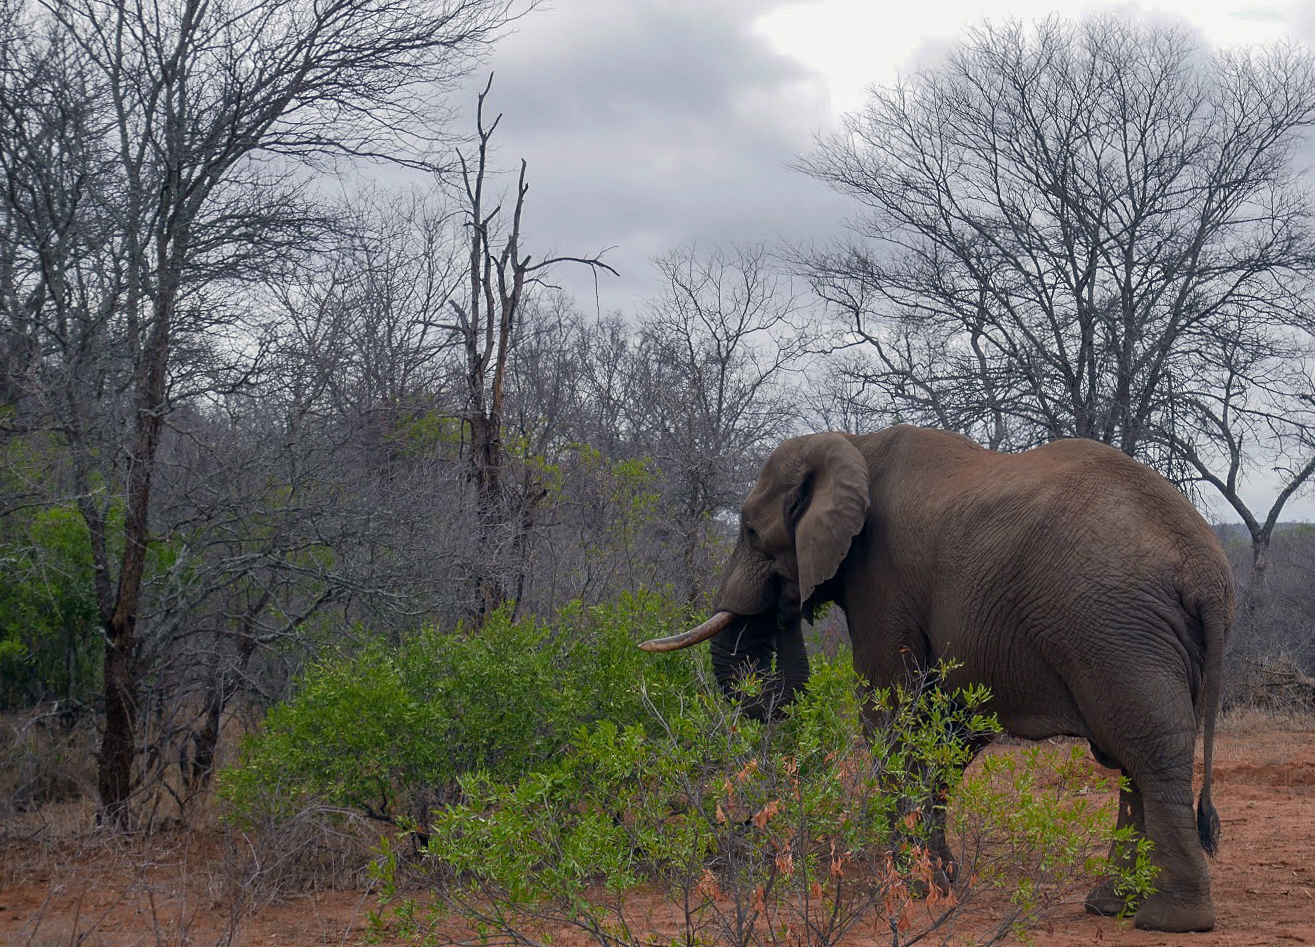 A safari in South Africa | Elephant in South Africa | EyeWearThese